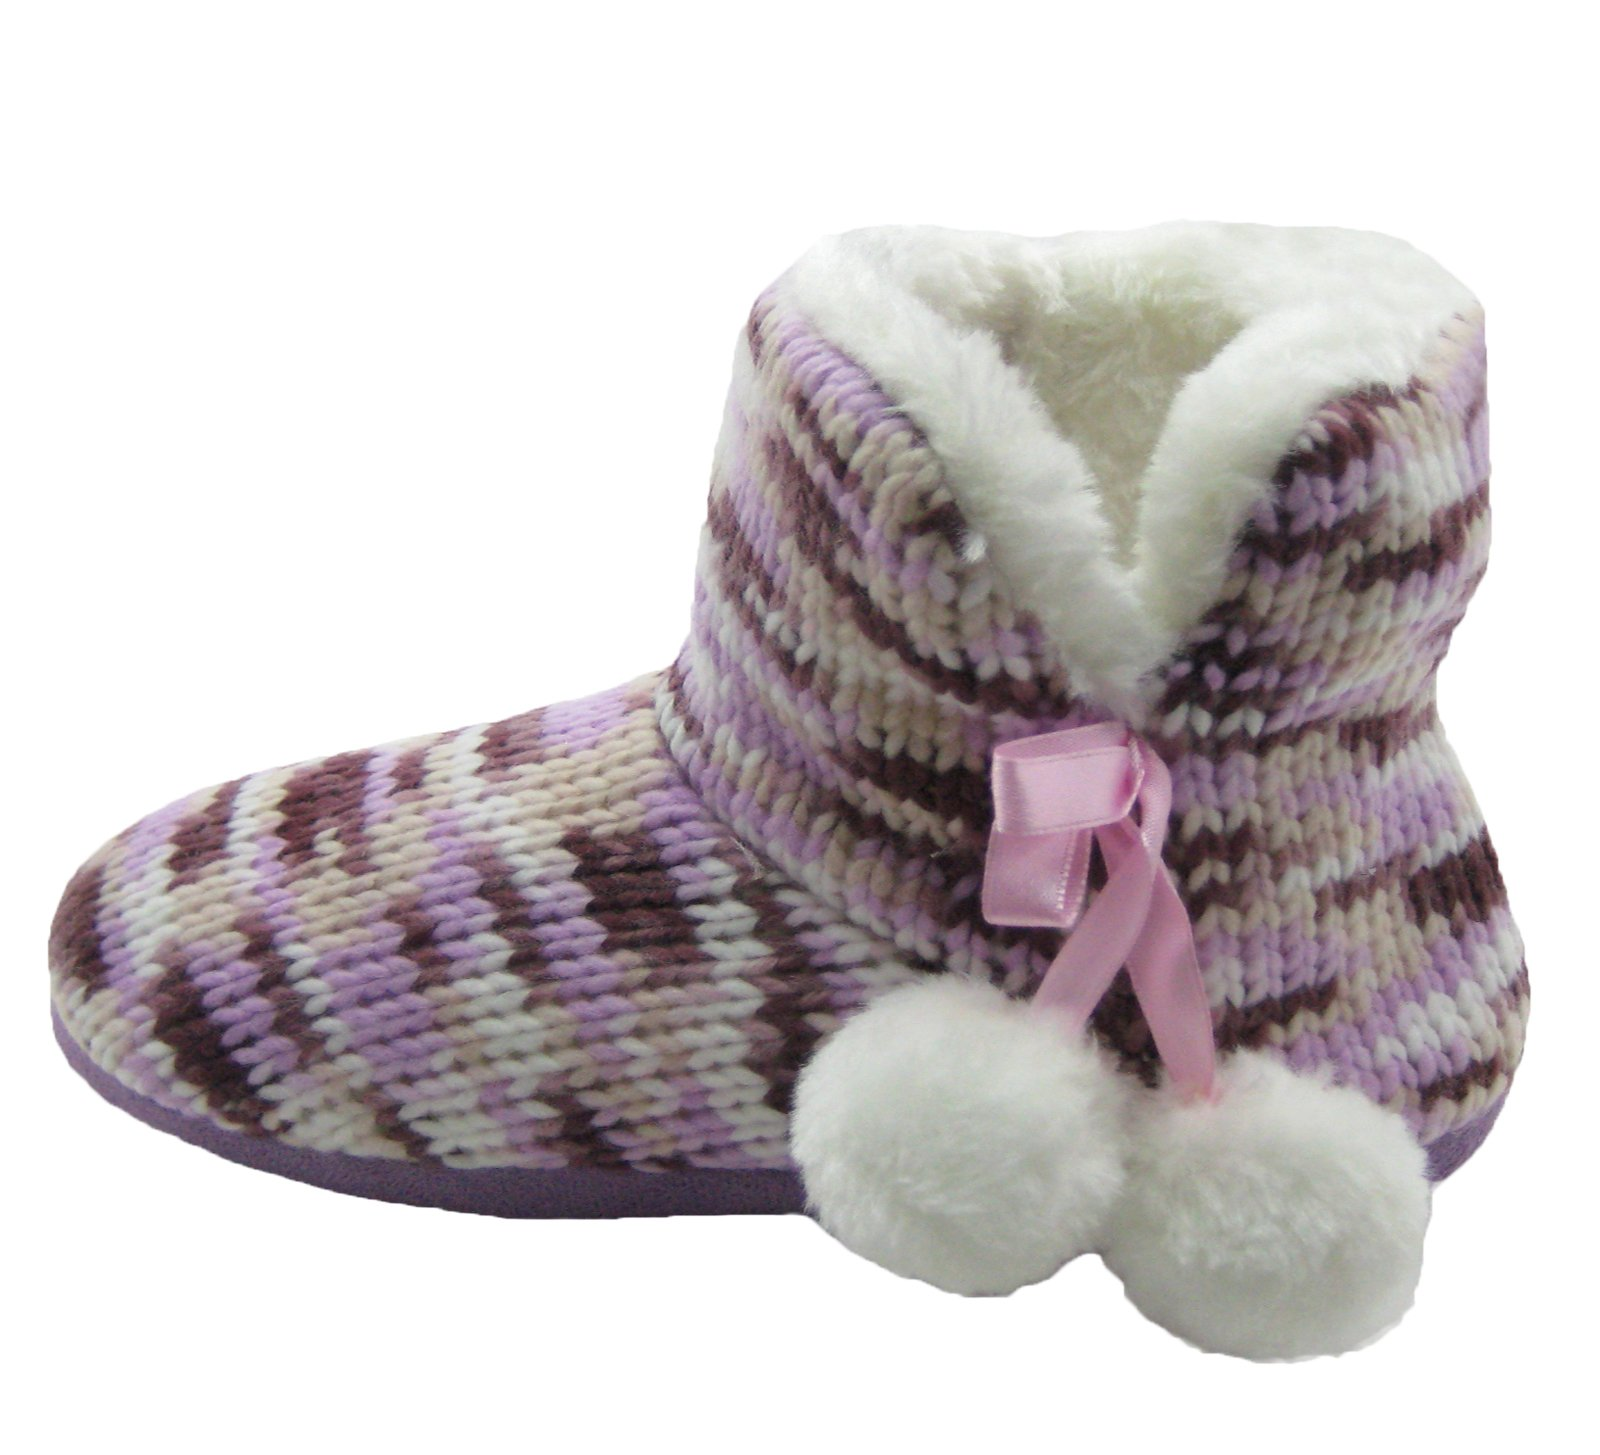 Fashion Blue Women's Knit Booties Slippers with Pom-poms & Fleece Lining (S / 5-6, Lt.Pink)